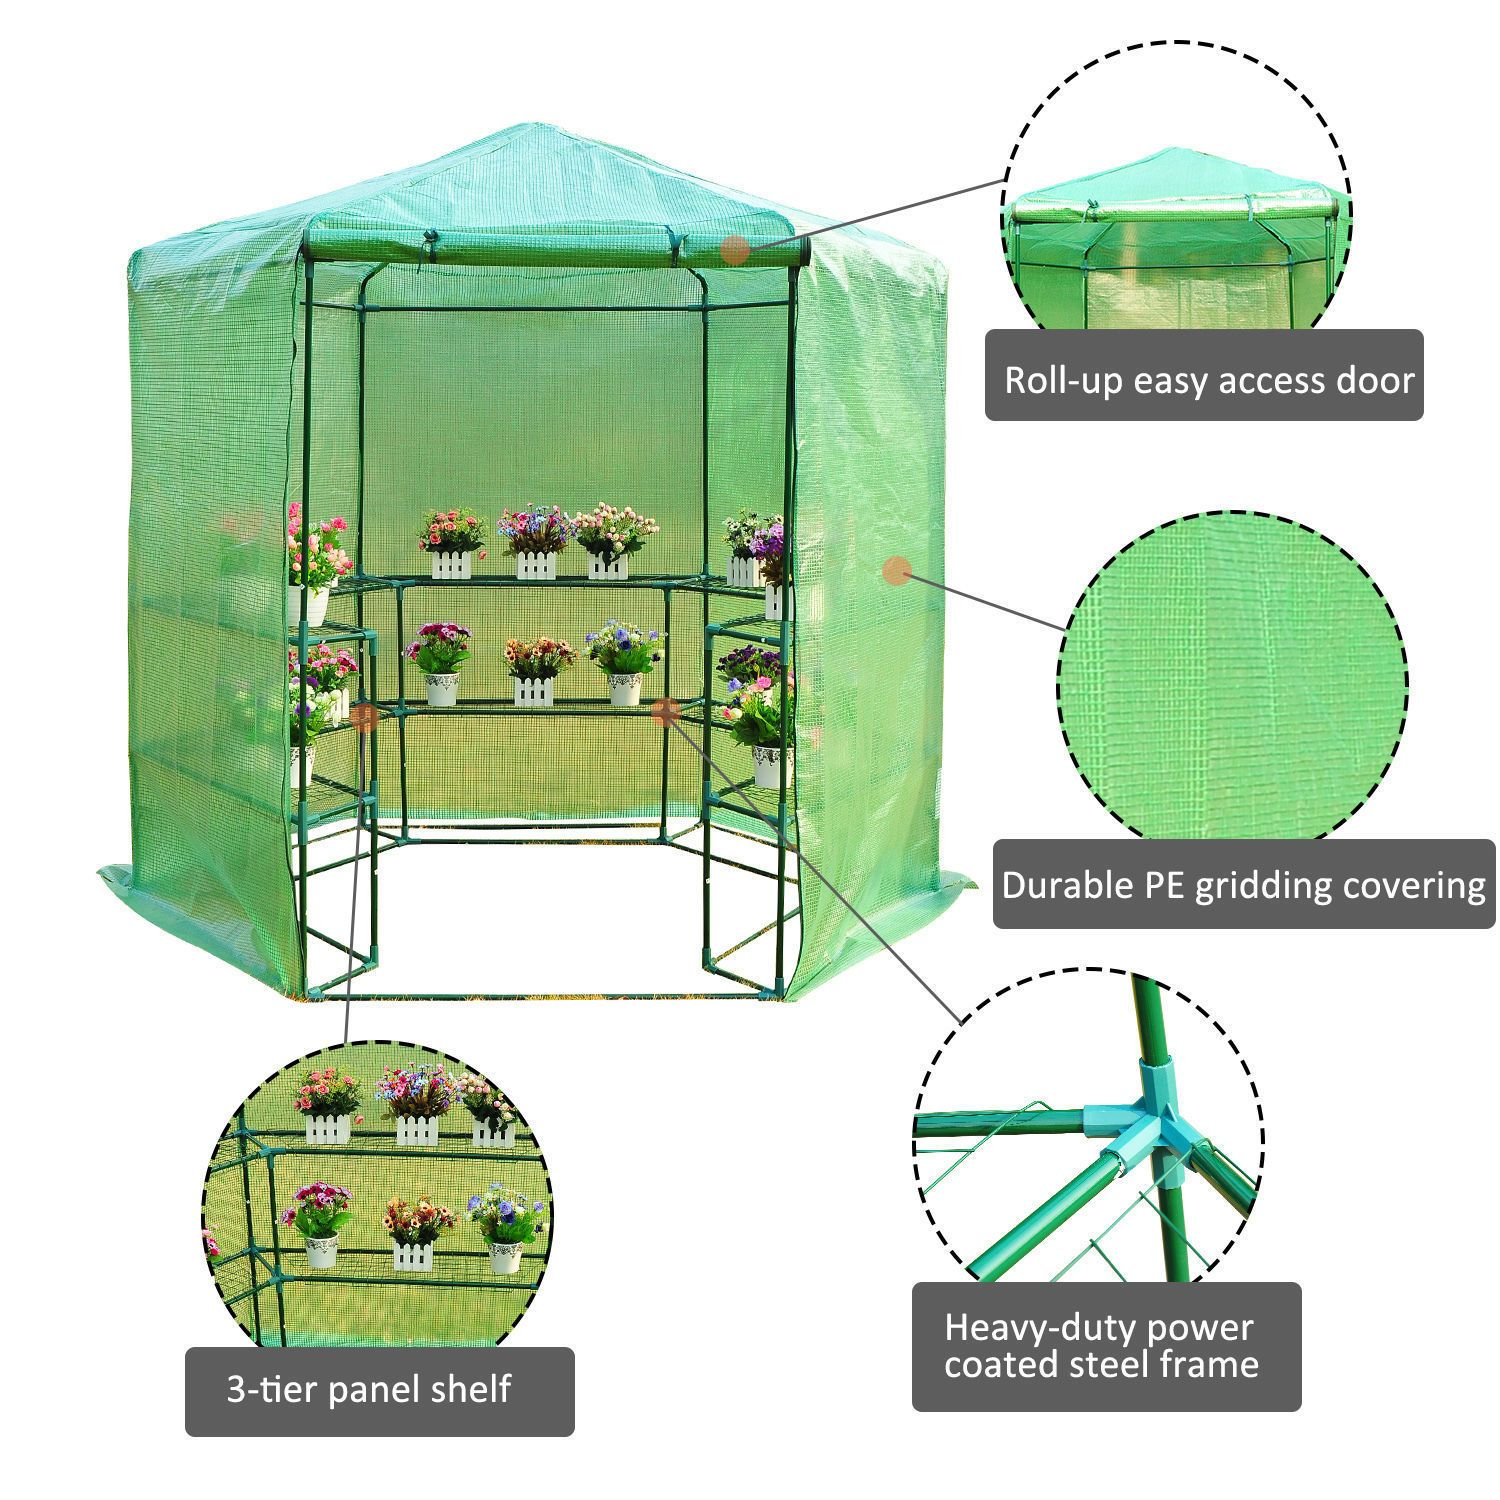 Outsunny Portable 3tier Shelf Hexagonal Walk In Greenhouse 7 5feet Ebay Walk In Greenhouse Planting Flowers Greenhouse Film